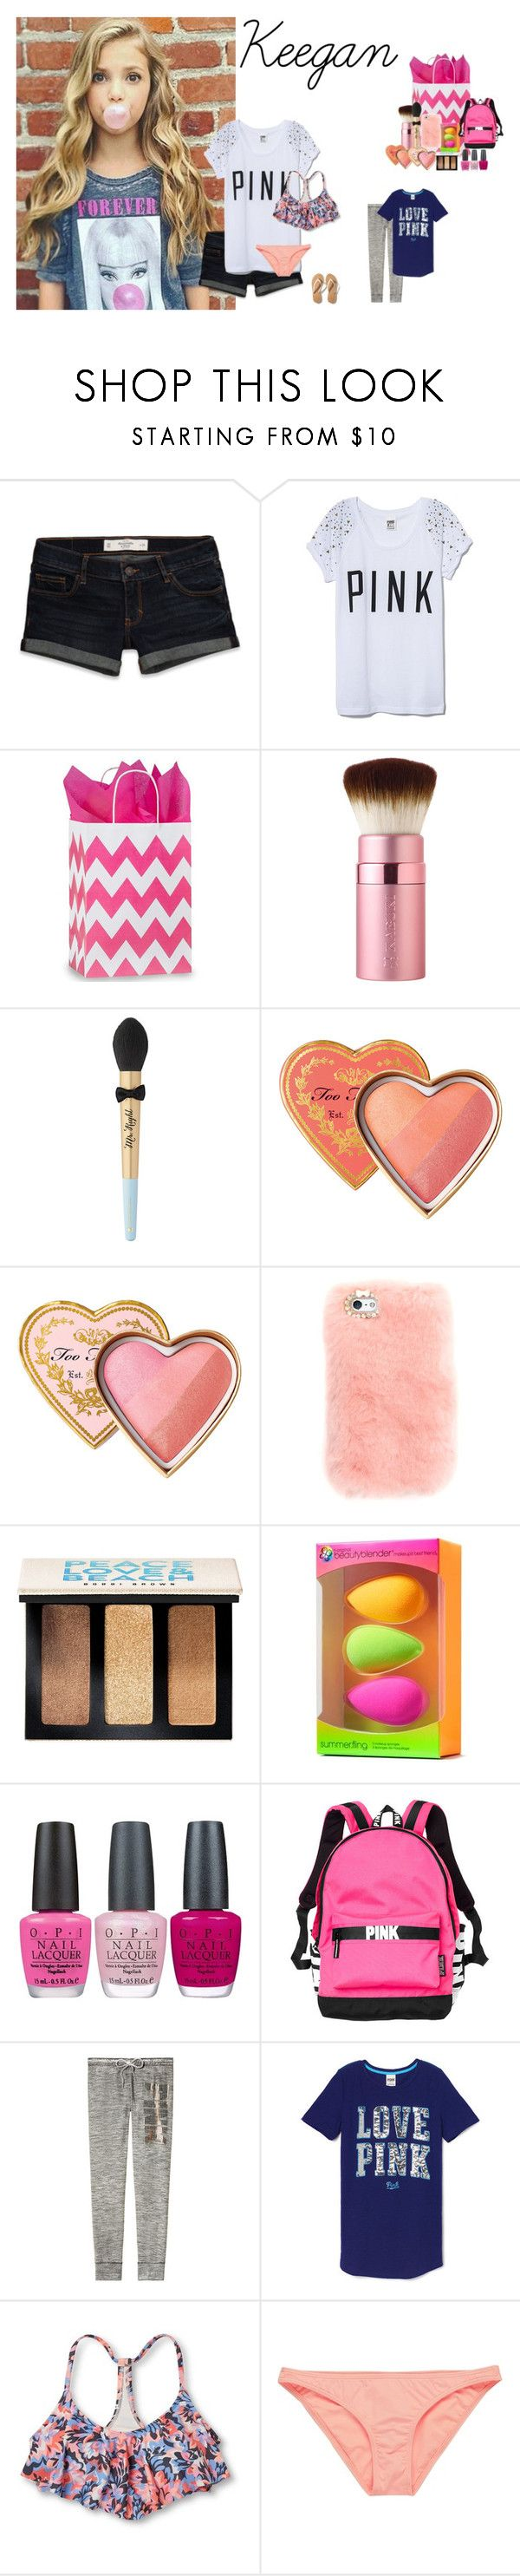 """""""Evelyn's Birthday"""" by thesefamilies ❤ liked on Polyvore featuring Abercrombie & Fitch, Victoria's Secret, Too Faced Cosmetics, Bobbi Brown Cosmetics, beautyblender, OPI, Xhilaration, Rip Curl and Hollister Co."""